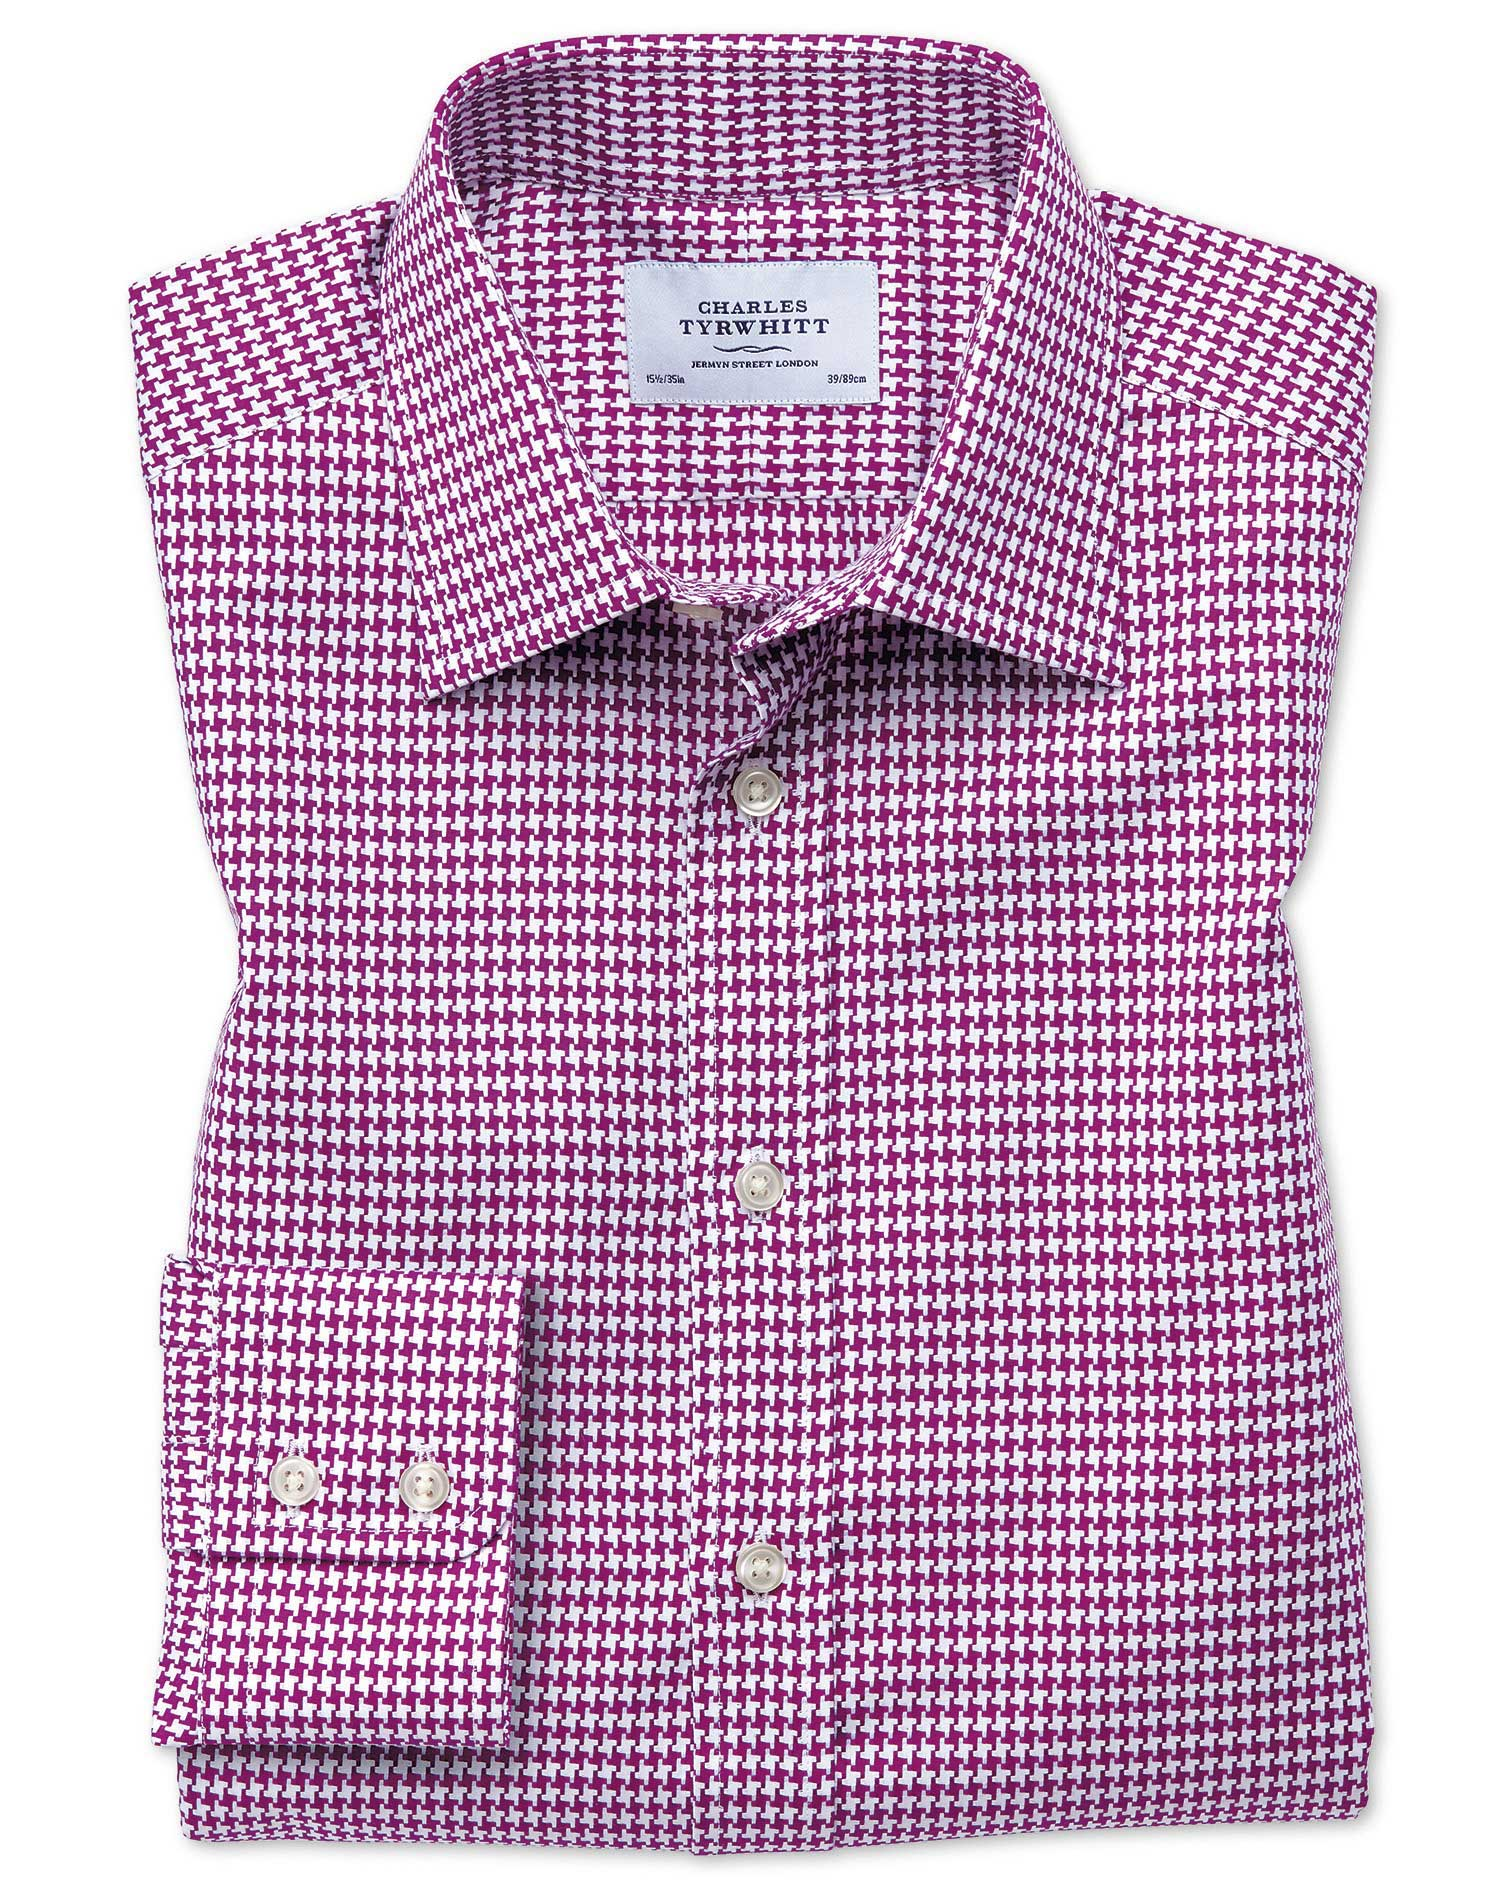 Classic Fit Large Puppytooth Berry Cotton Formal Shirt Single Cuff Size 16.5/35 by Charles Tyrwhitt